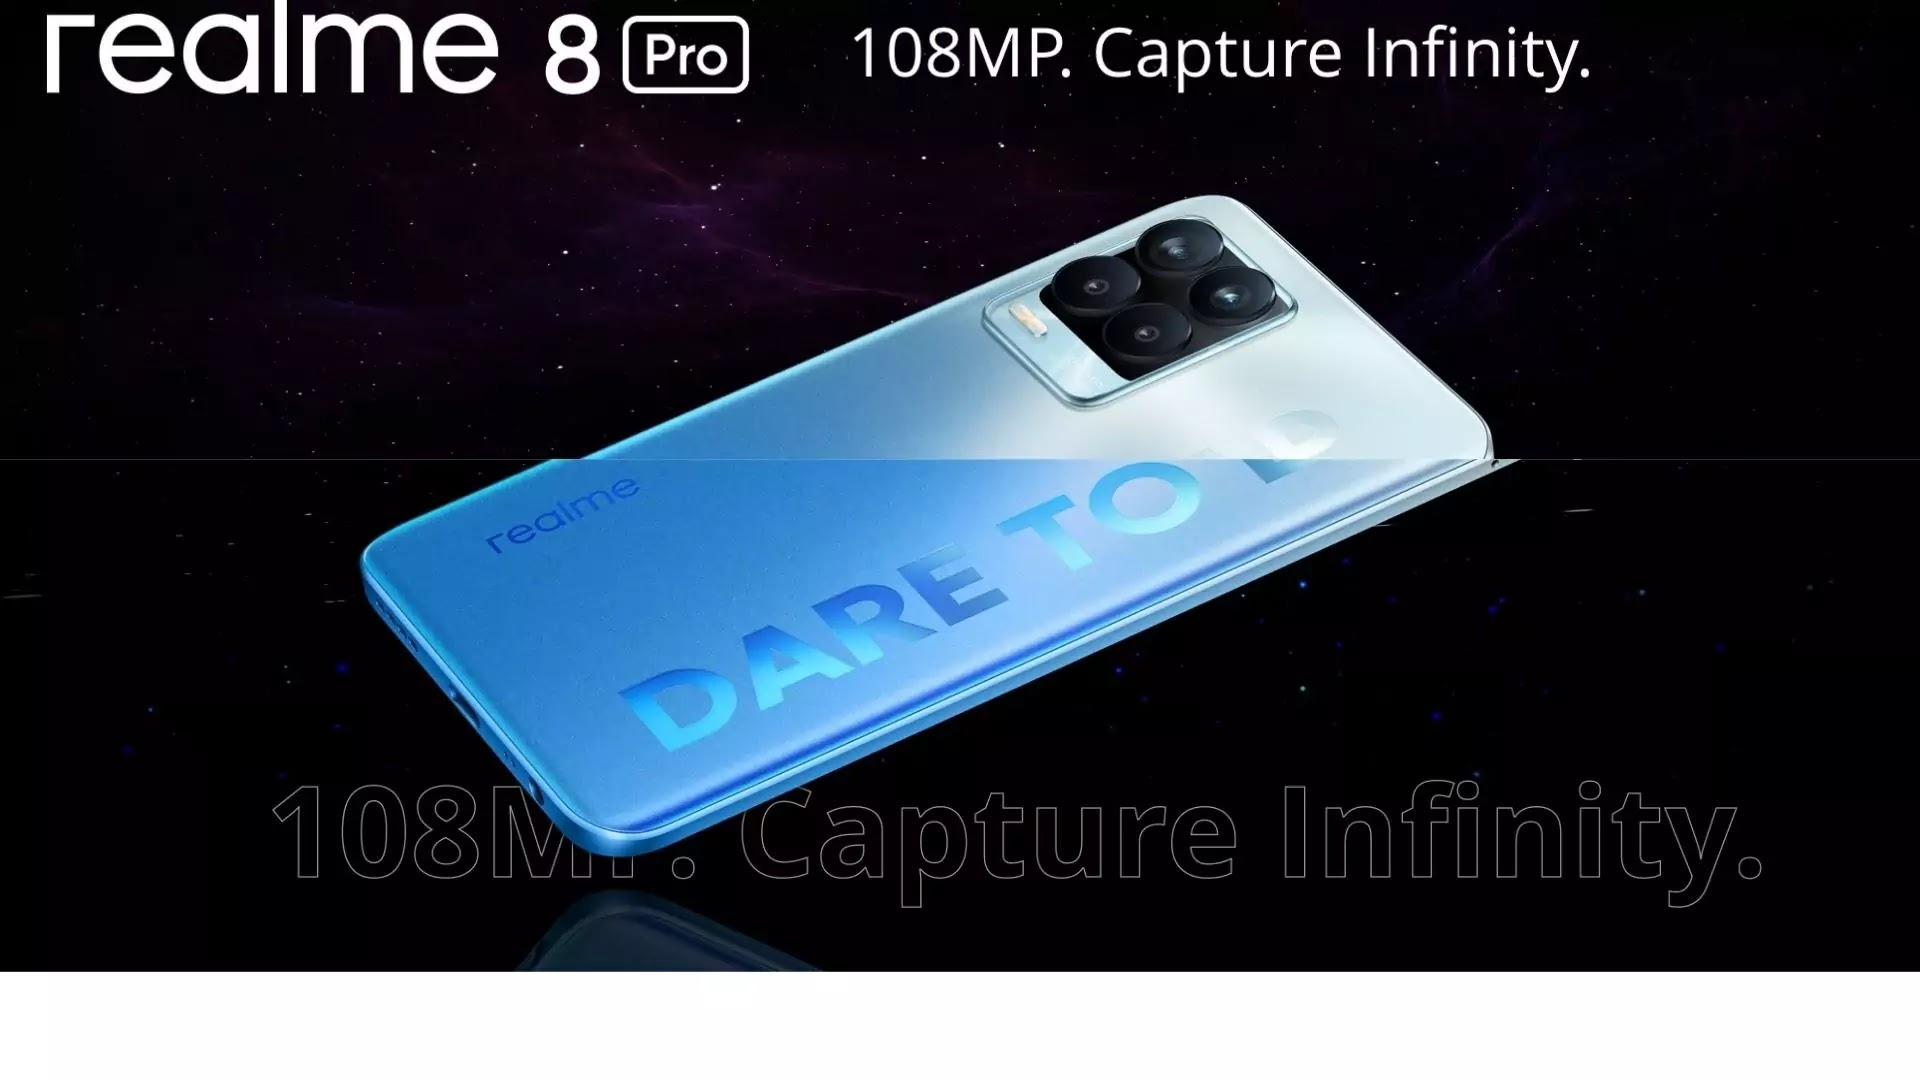 Realme 8 Pro Best Mobile Phone Under 20,000 in INDIA